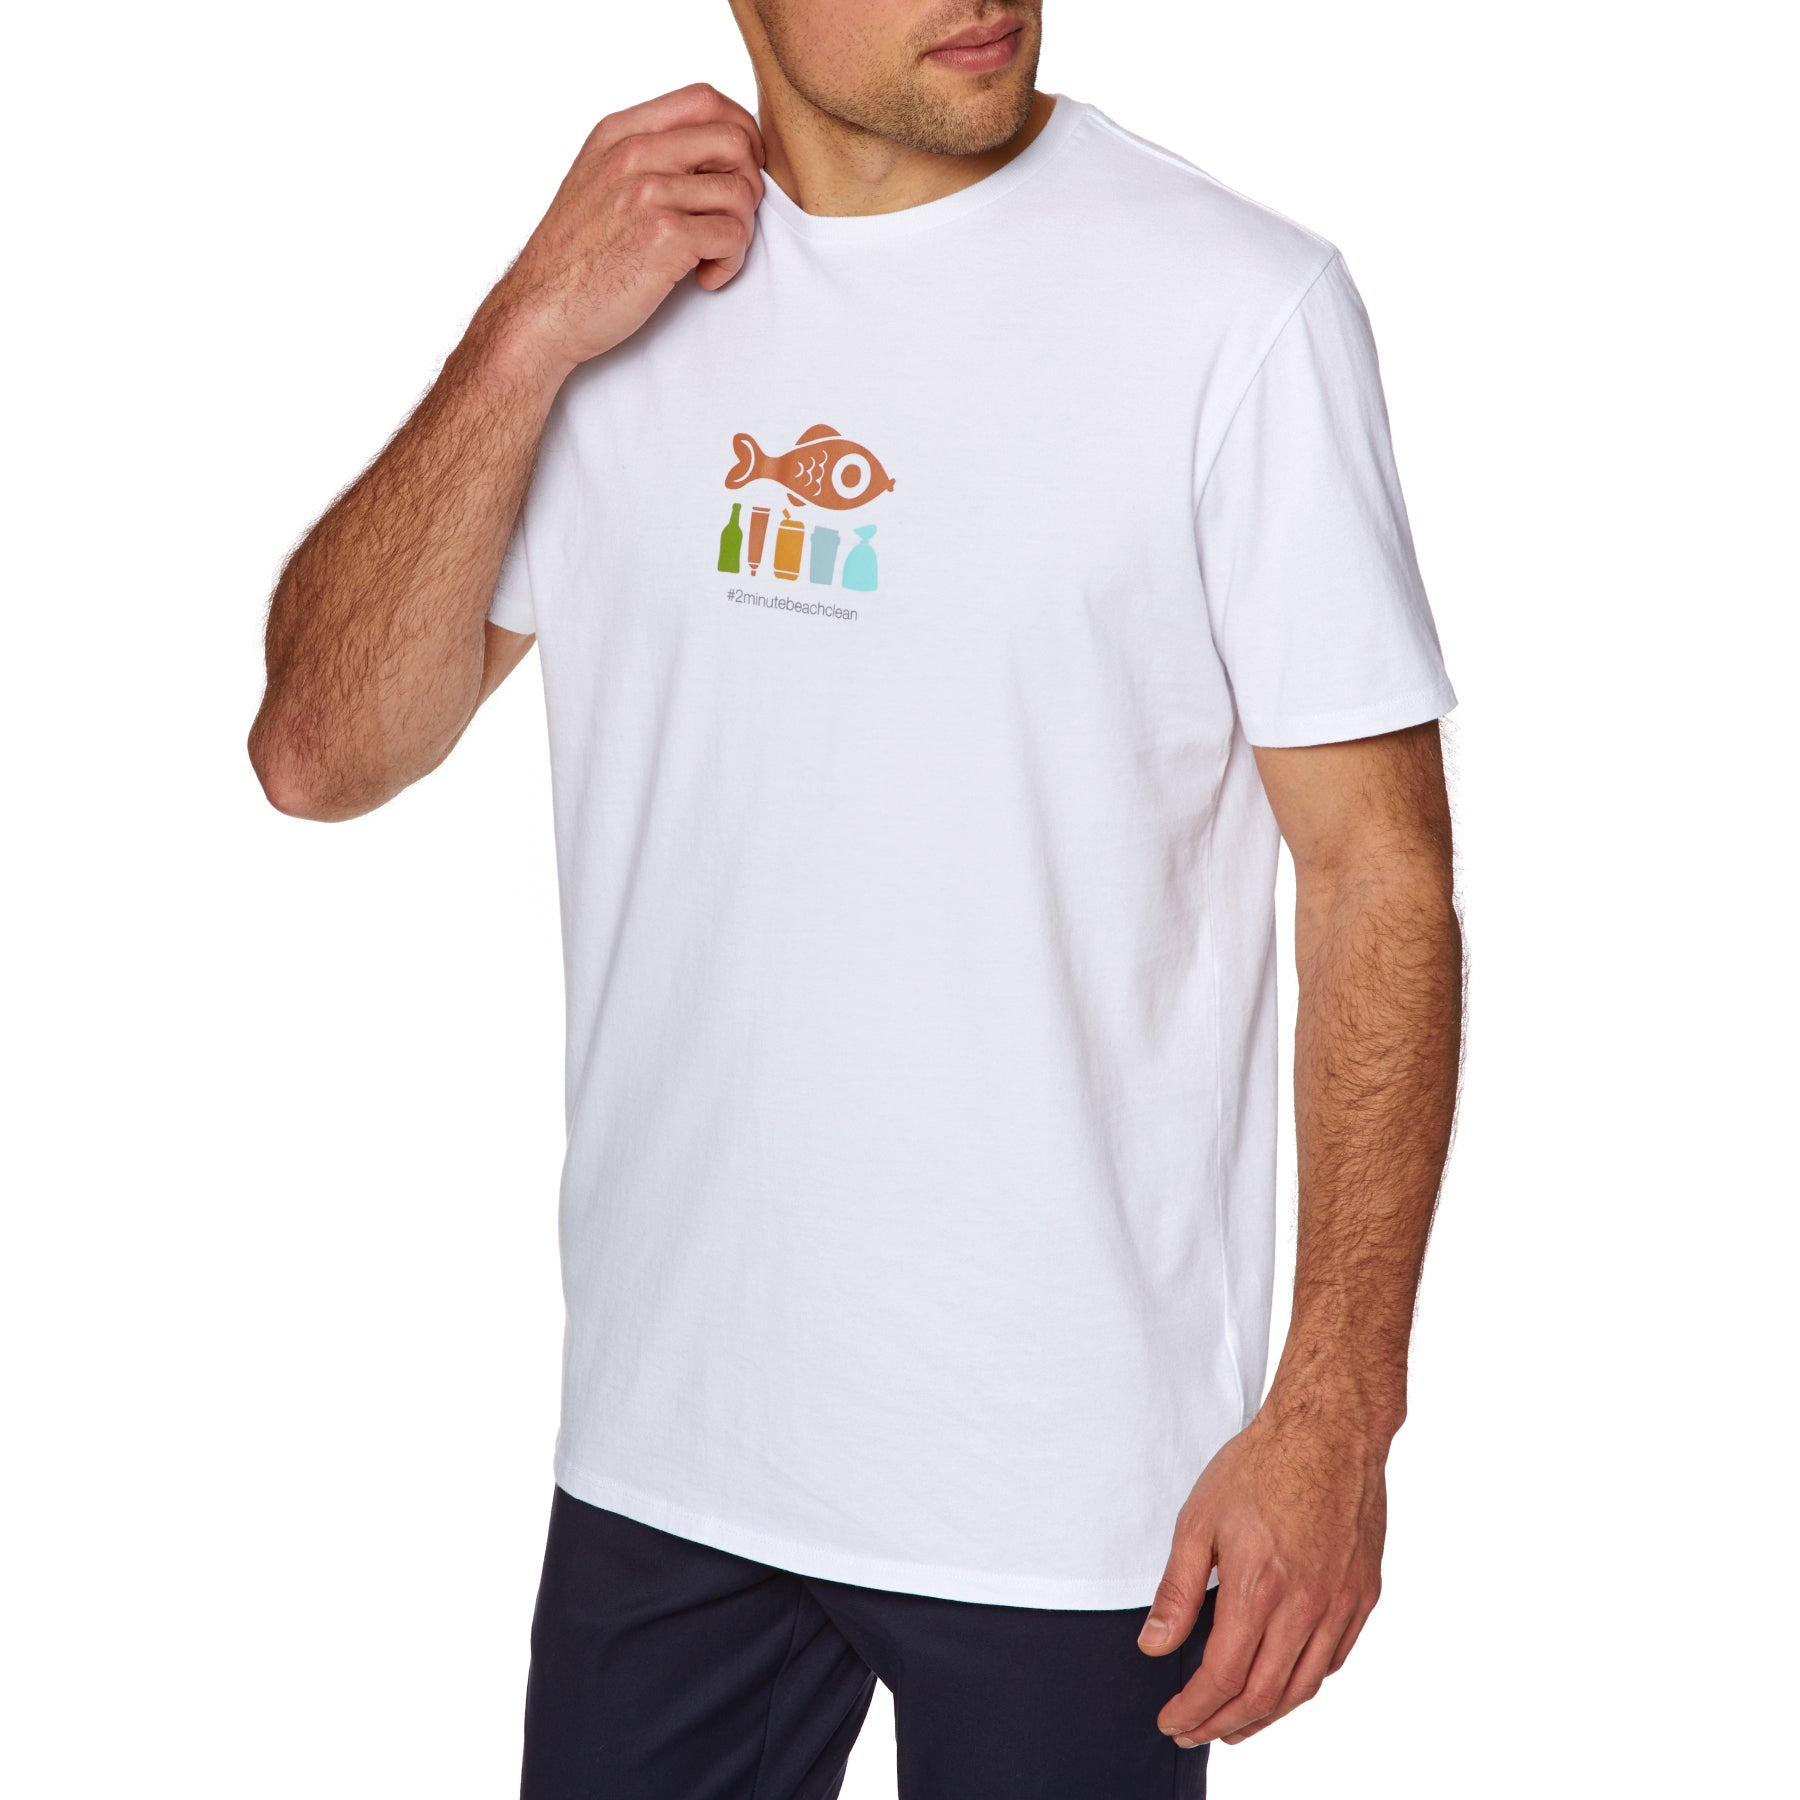 2 Minute Beach Clean Mens Short Sleeve T-Shirt - White